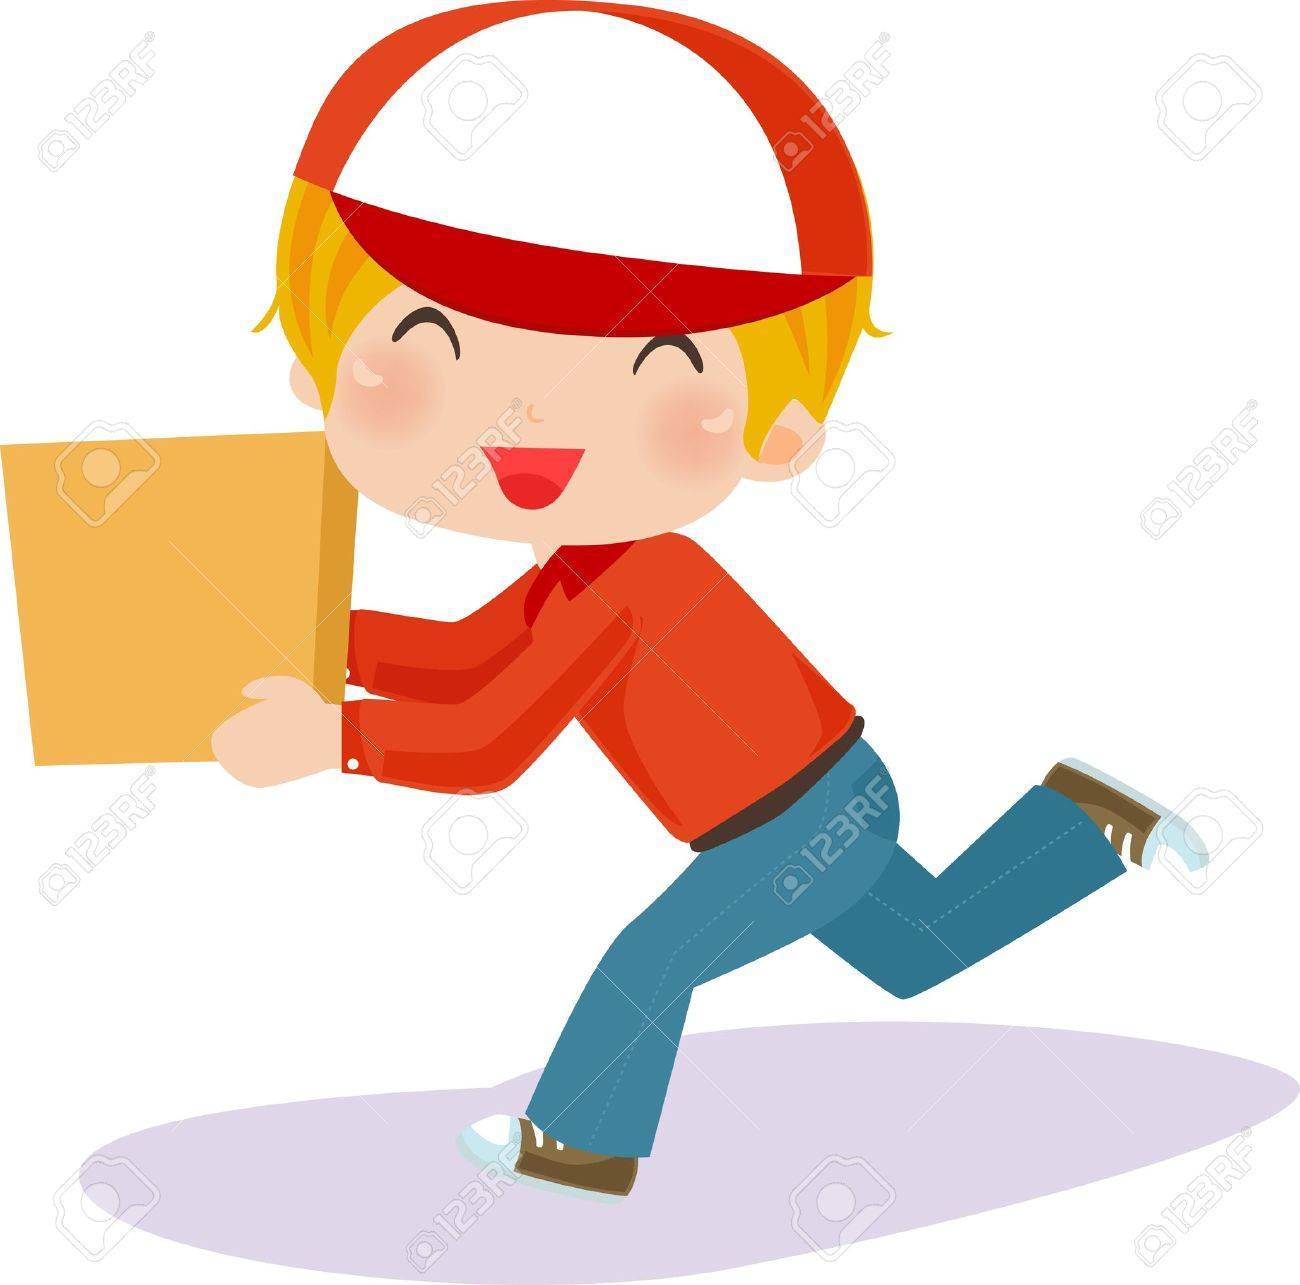 Delivery boy with box - vector illustration. Stock Vector - 9765833